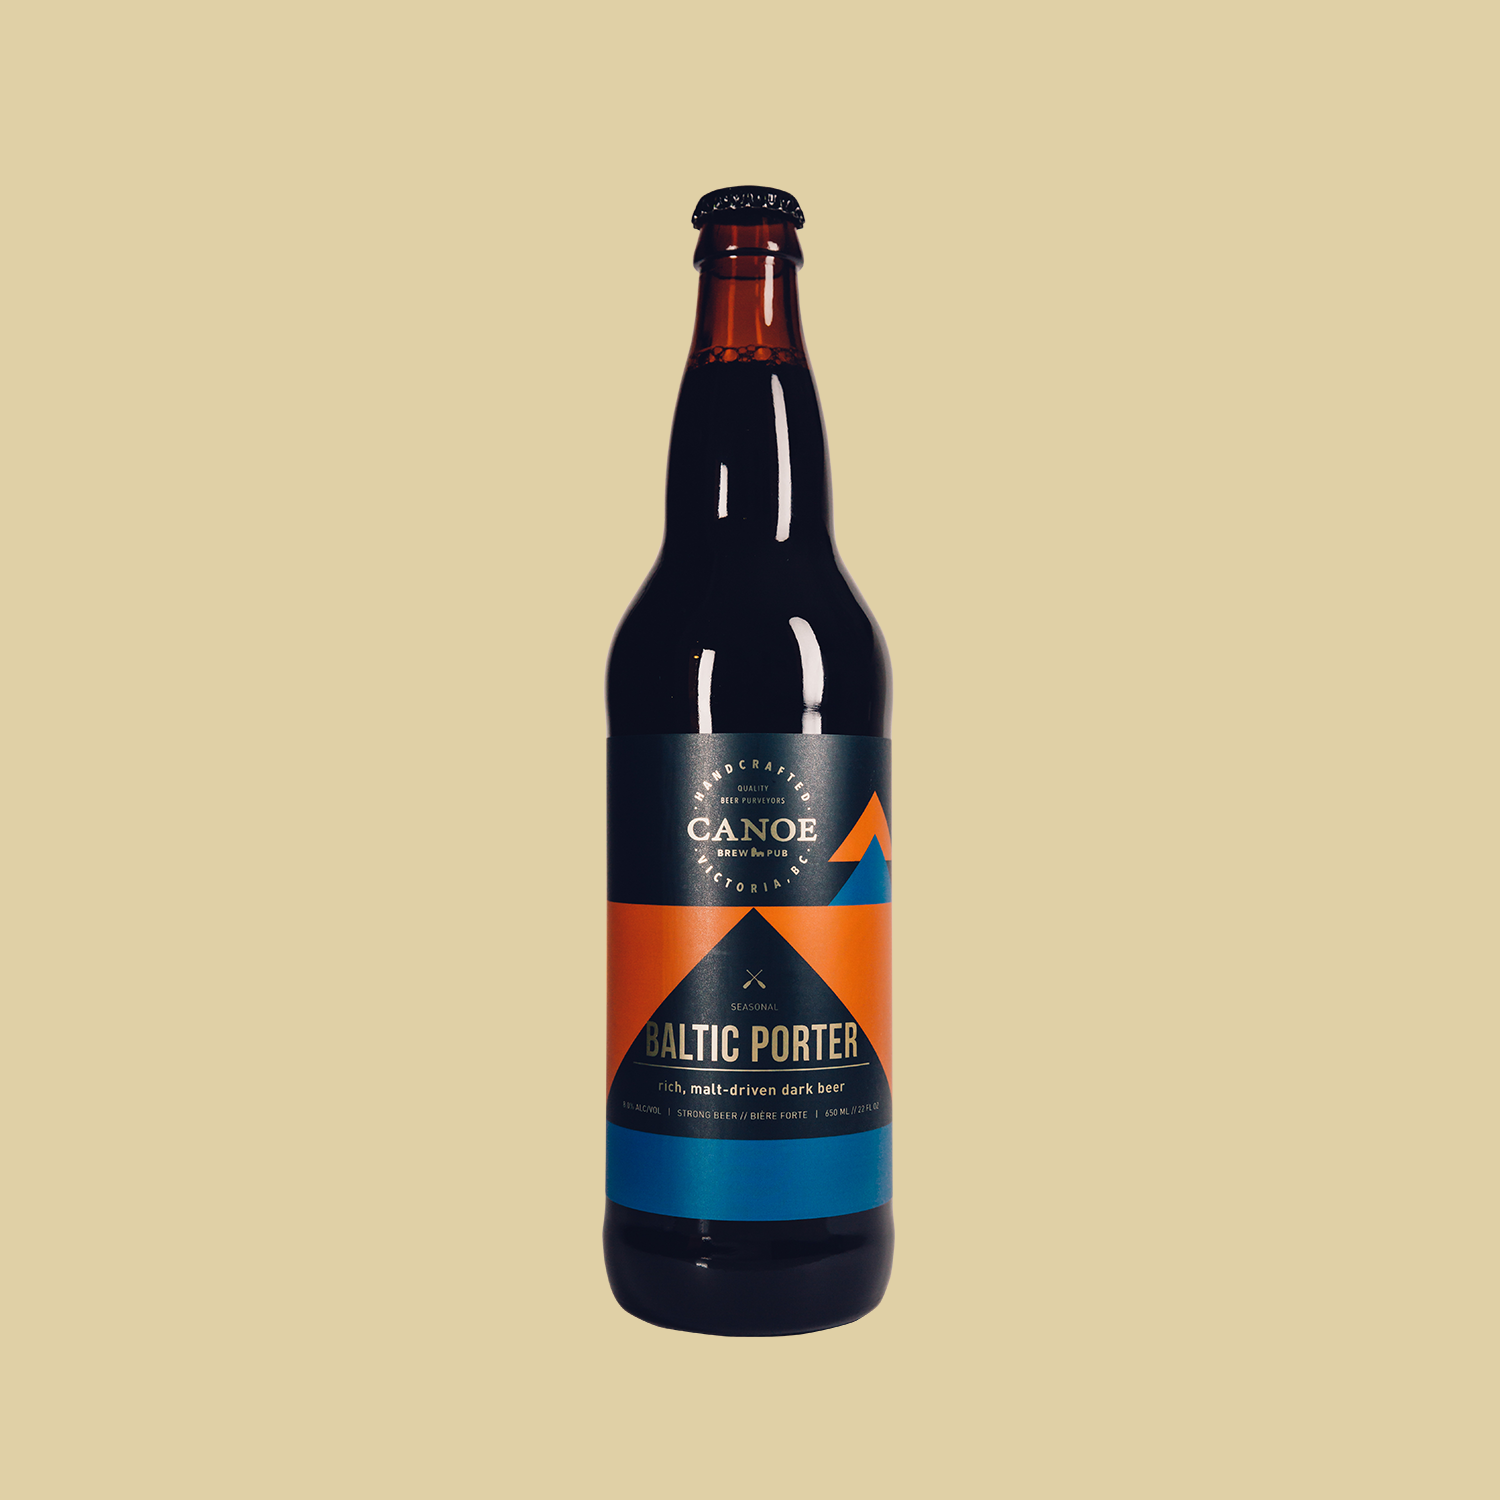 Baltic Porter - A rich, malt-driven dark beer.Similar to an Imperial Stout, the Baltic Porter offers richness and warmth, but favours smoothness and complexity – think cocoa, dried fruits and molasses – over any roasted or burnt malt character.ALC: 8%IBU: 18 (low bitterness/hoppiness)Malt: High